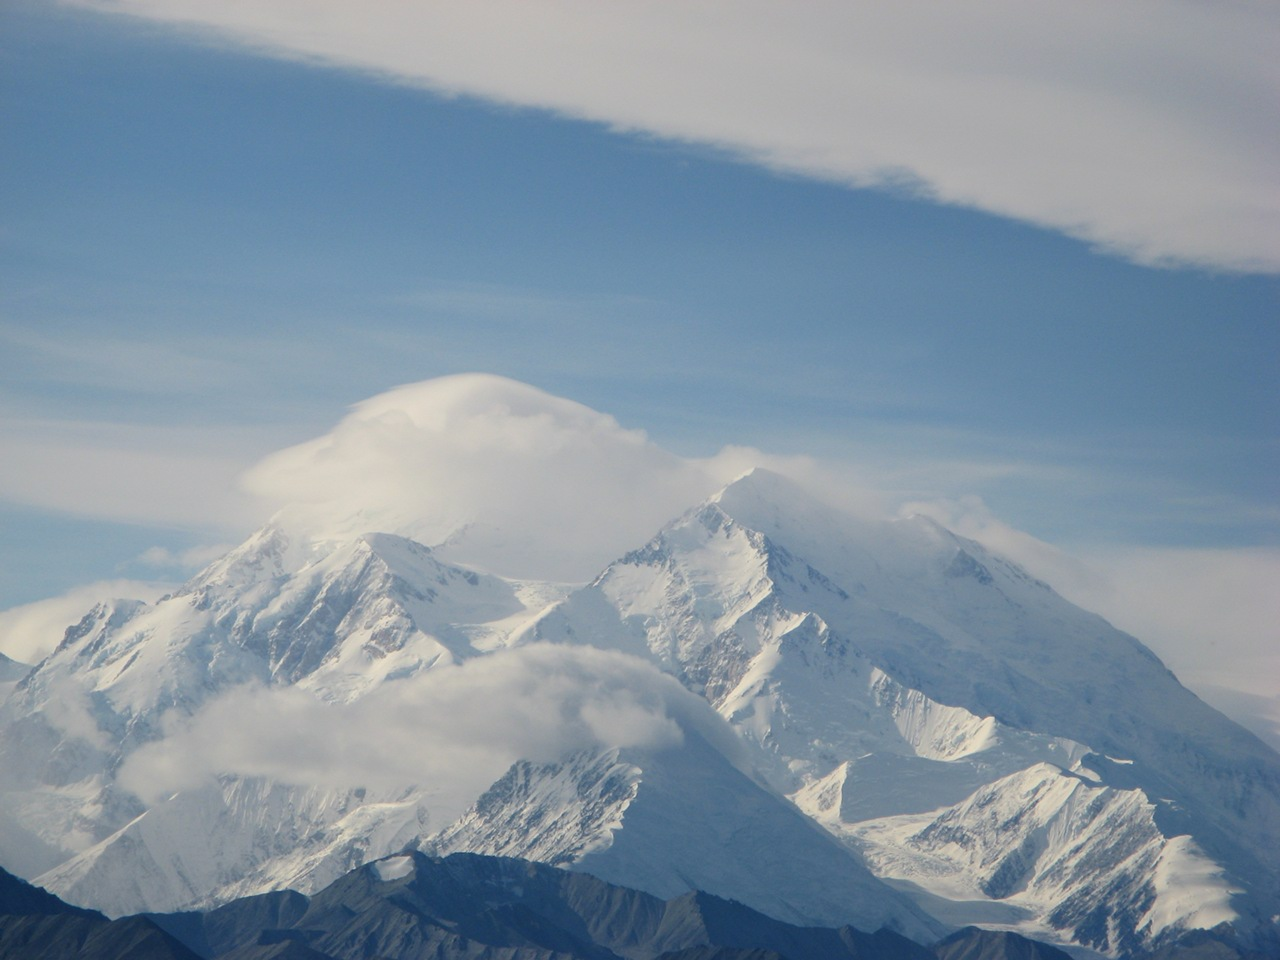 A view of Denali, from Fish Creek.